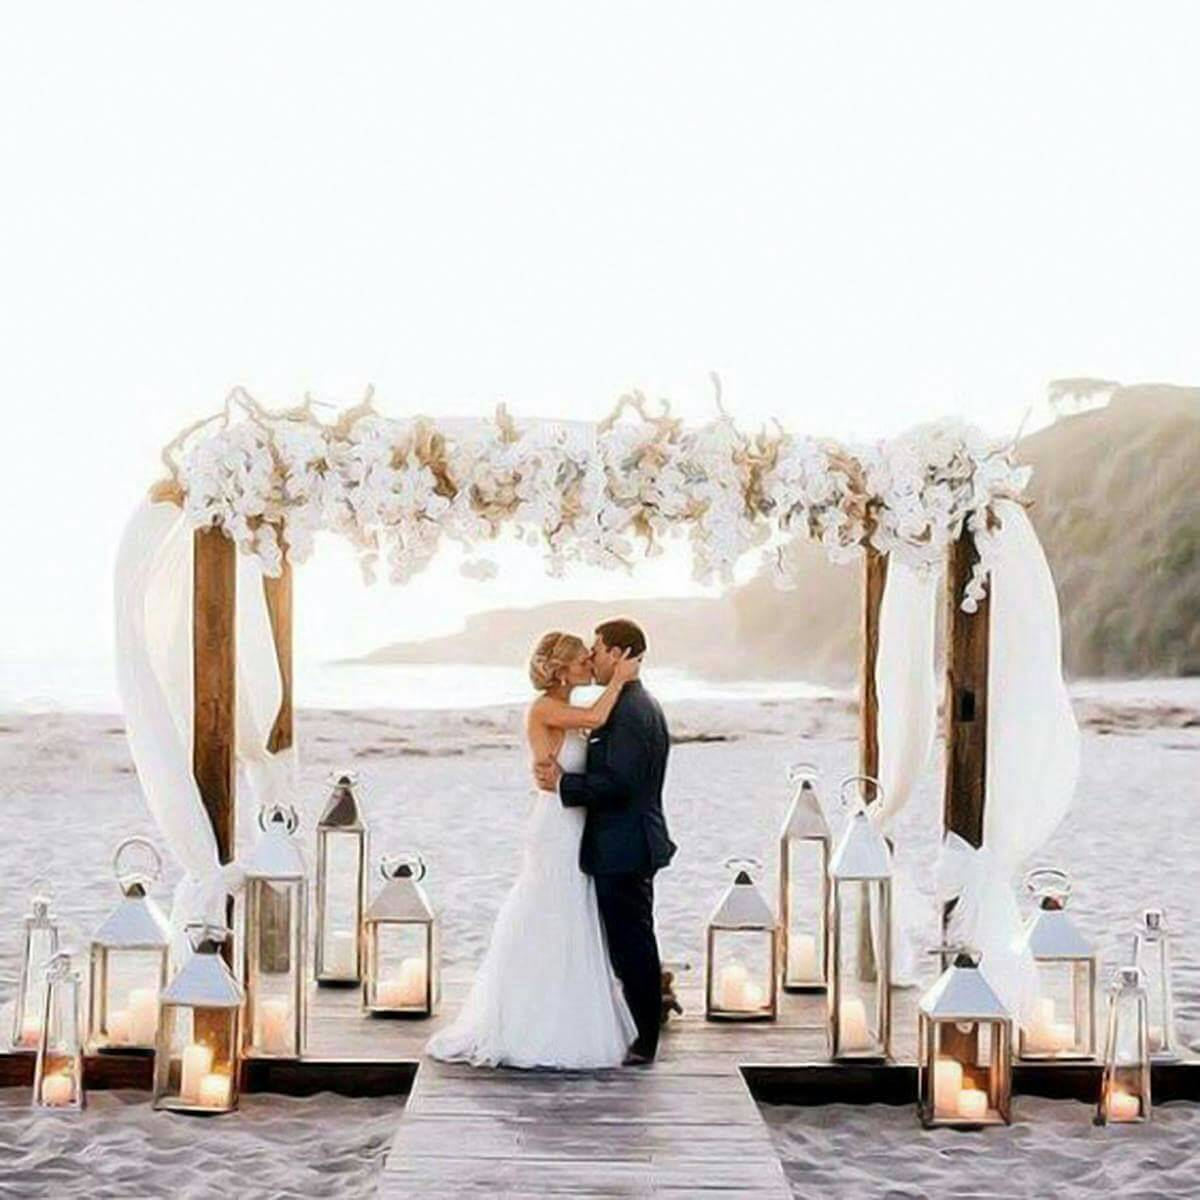 beach-wedding-arch-decorations-best-of-19-charming-beach-and-coastal-wedding-arch-ideas-for-2018-of-beach-wedding-arch-decorations. ¿Qué es una wedding planner?